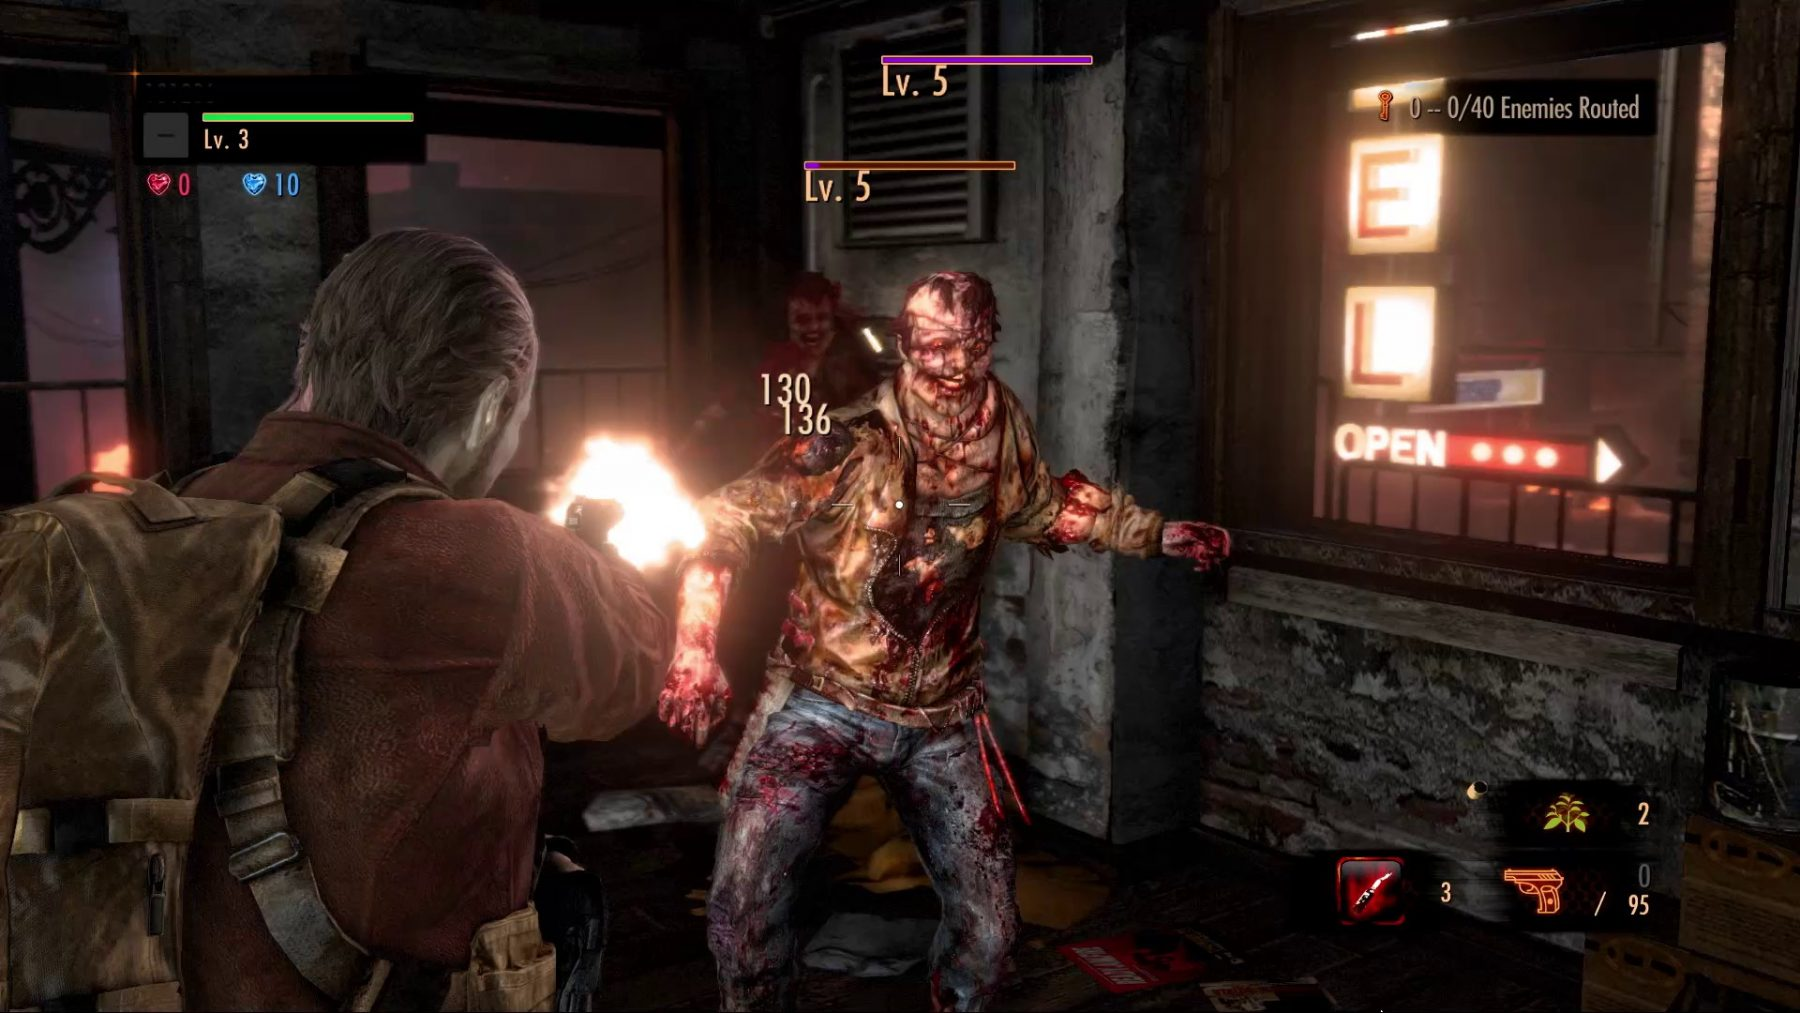 Download hacked version the of Resident Evil Revelations 2 for PS4